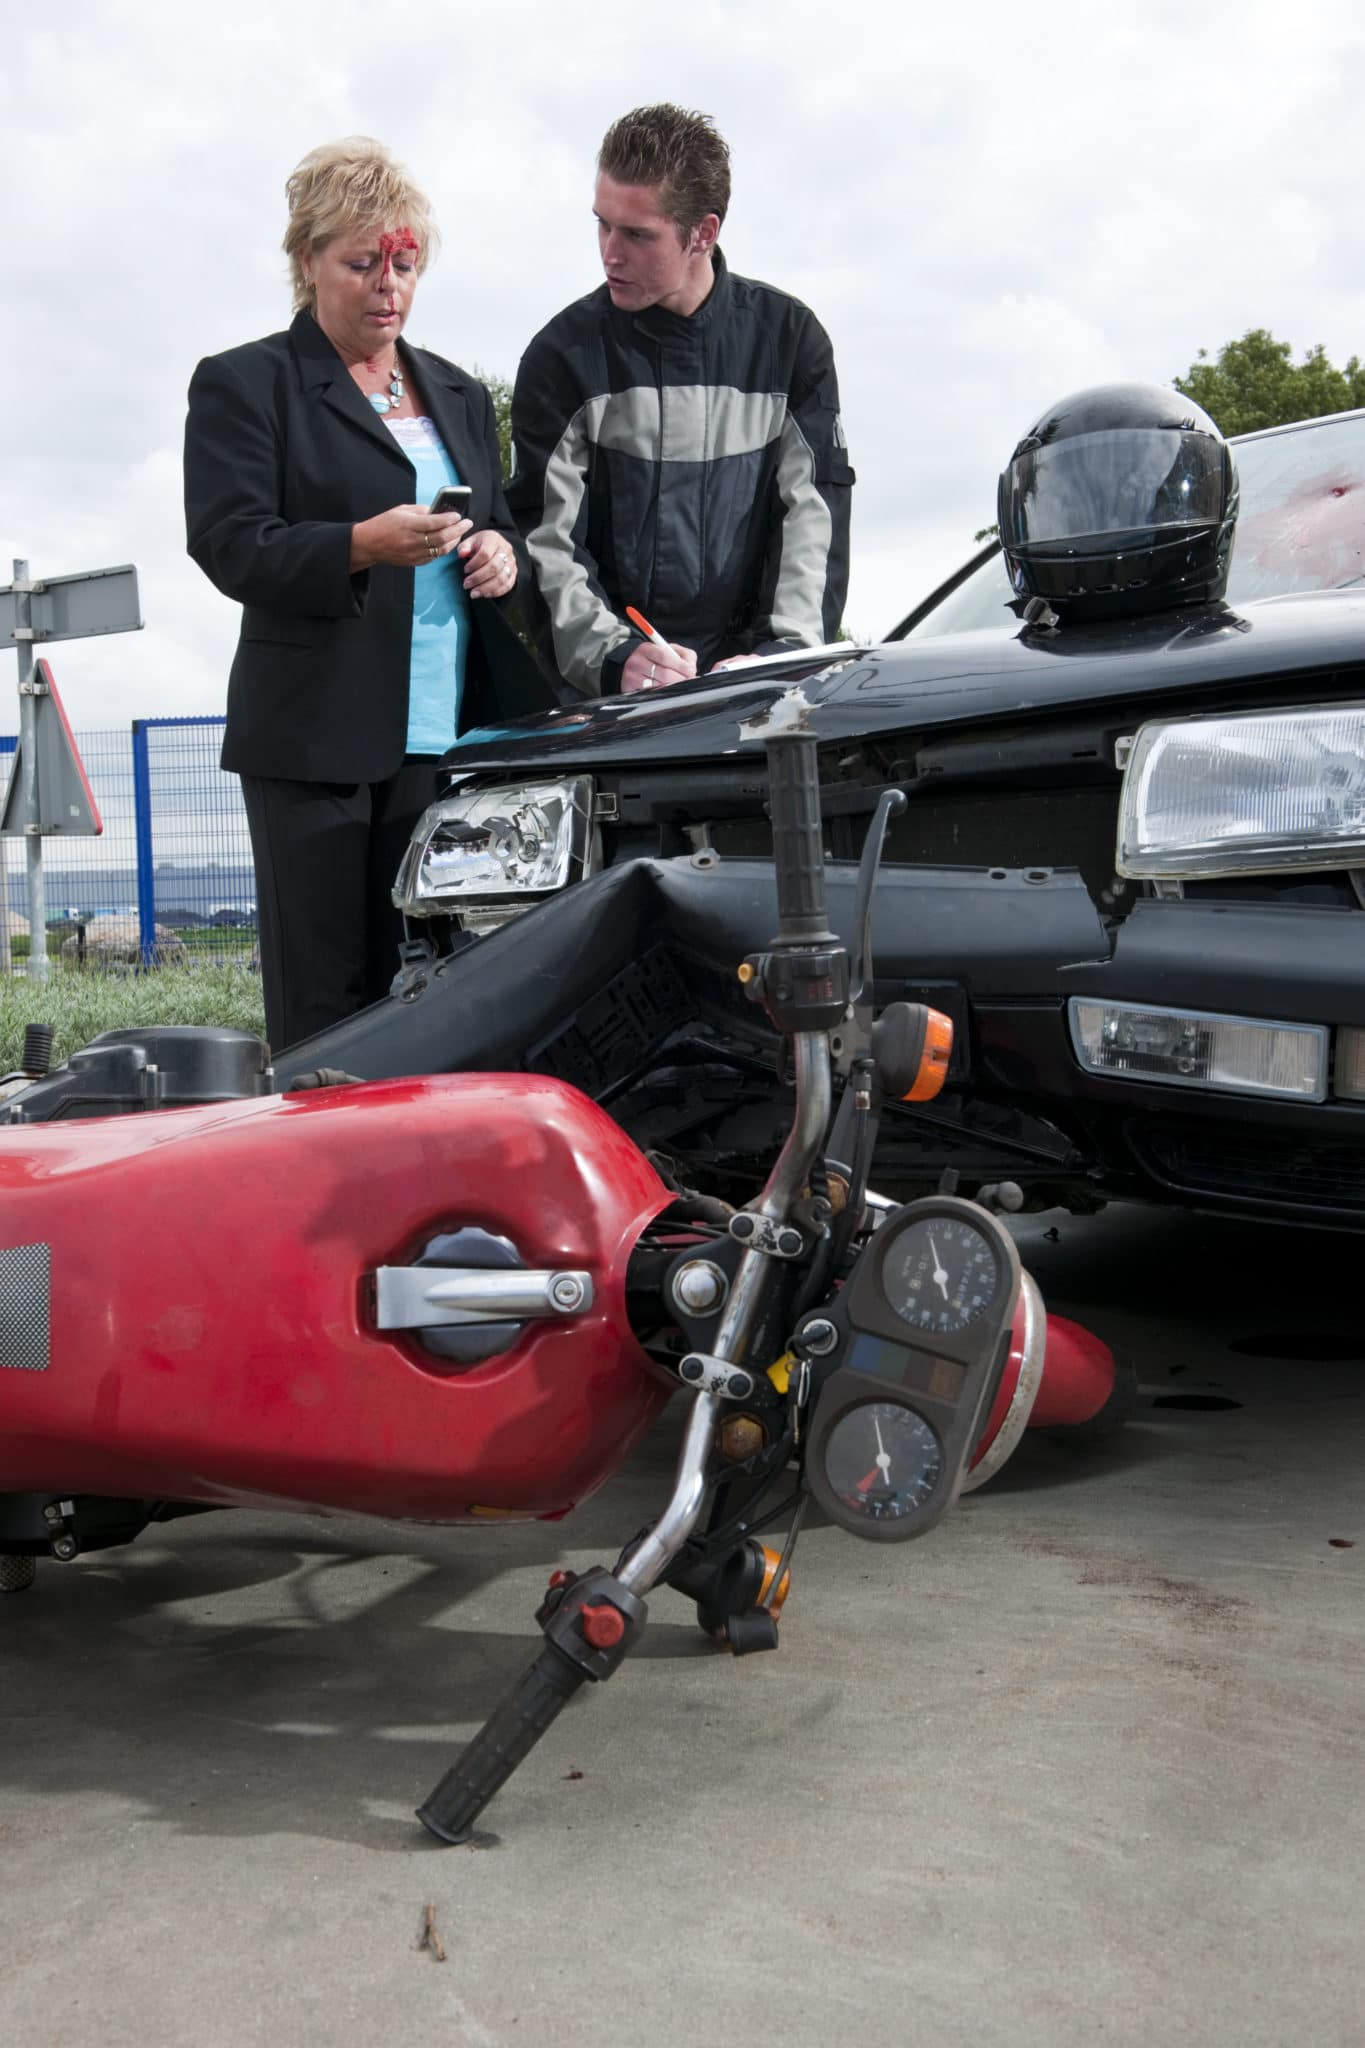 West Caldwell Motorcycle Accident Attorney